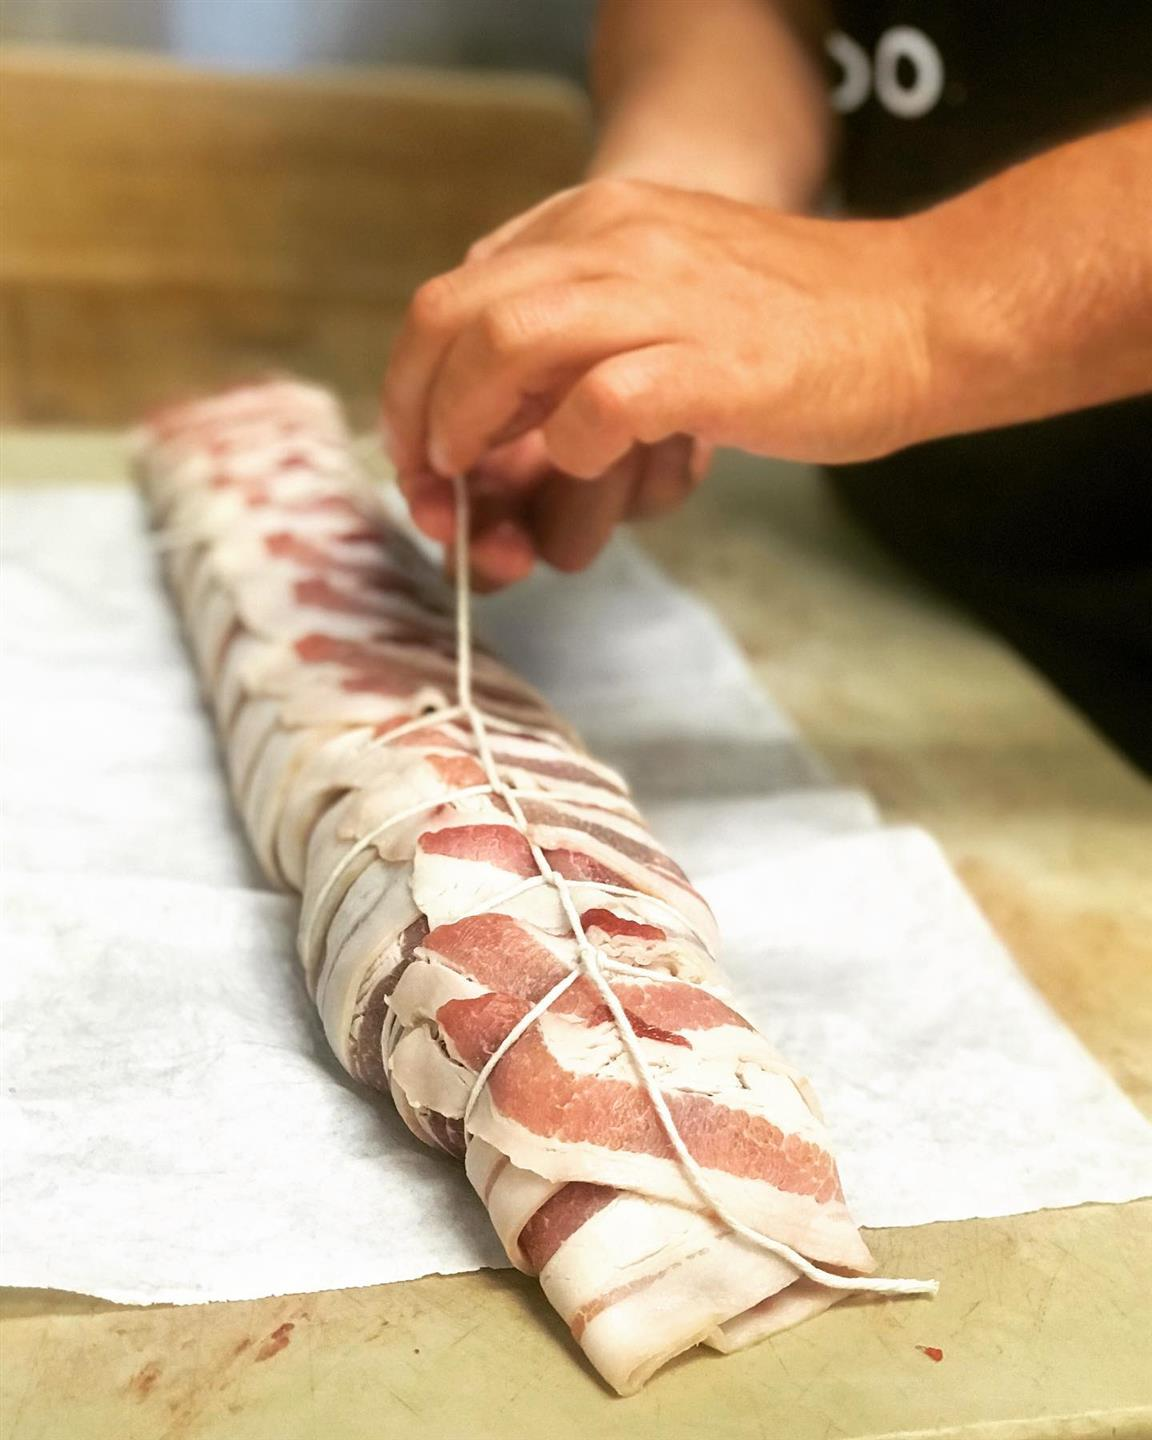 chef rolling bacon around meat